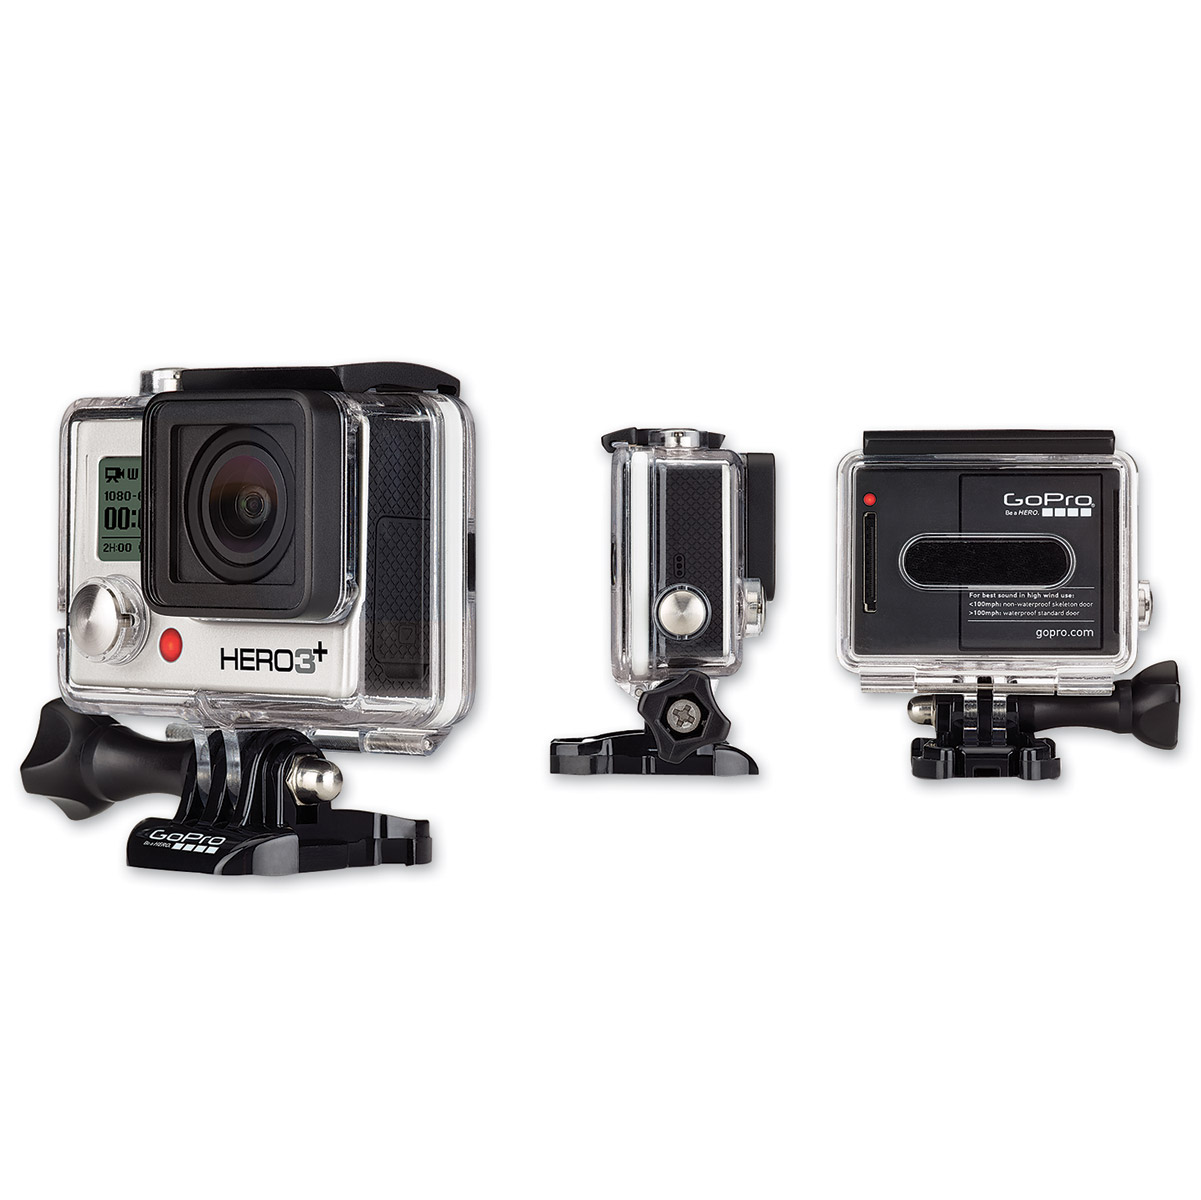 GoPro HD HERO3+ Silver Motorsports Edition Camera